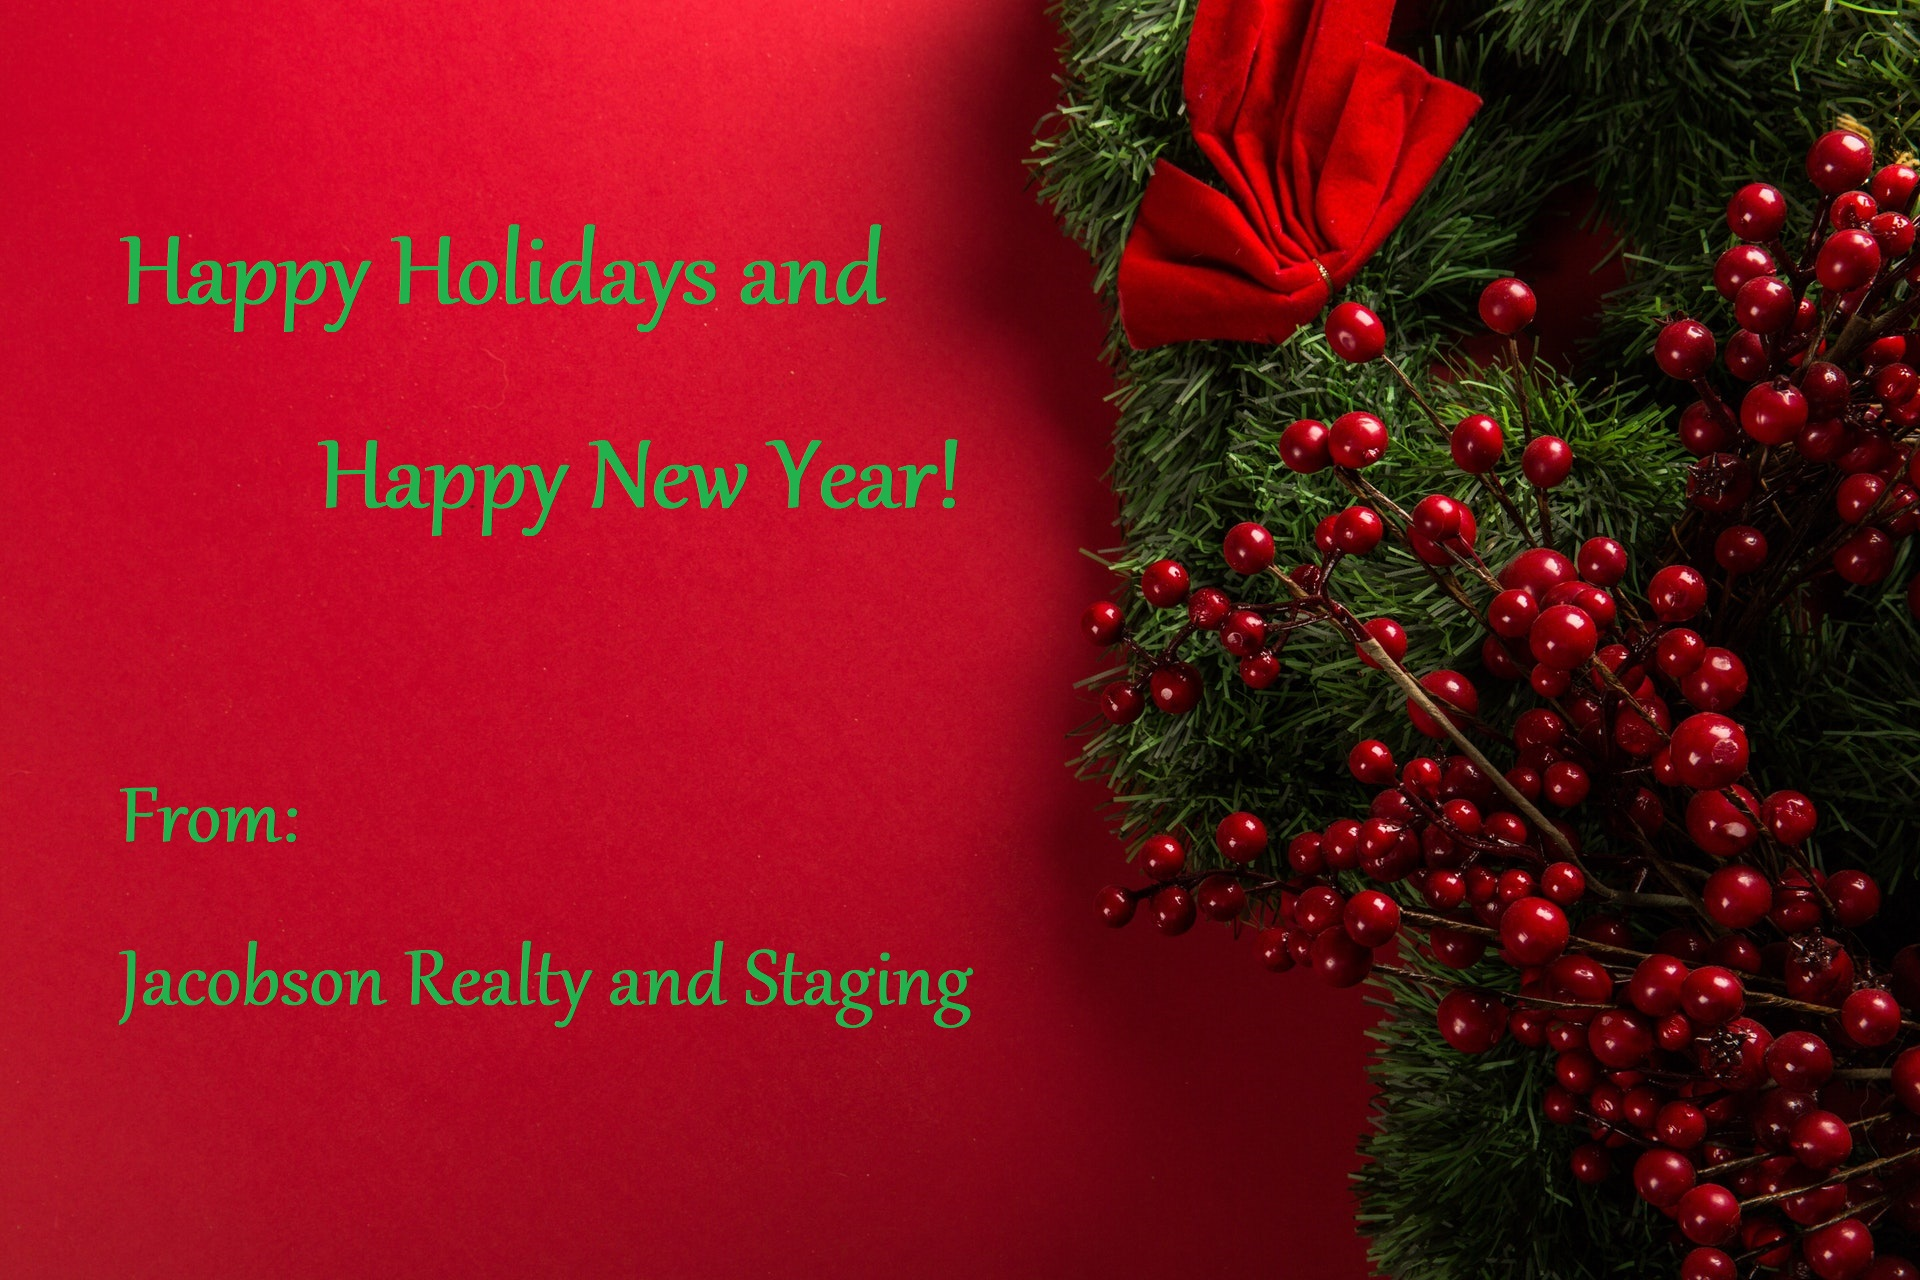 Happy Holidays and Happy New Year from Jacobson Realty and Staging